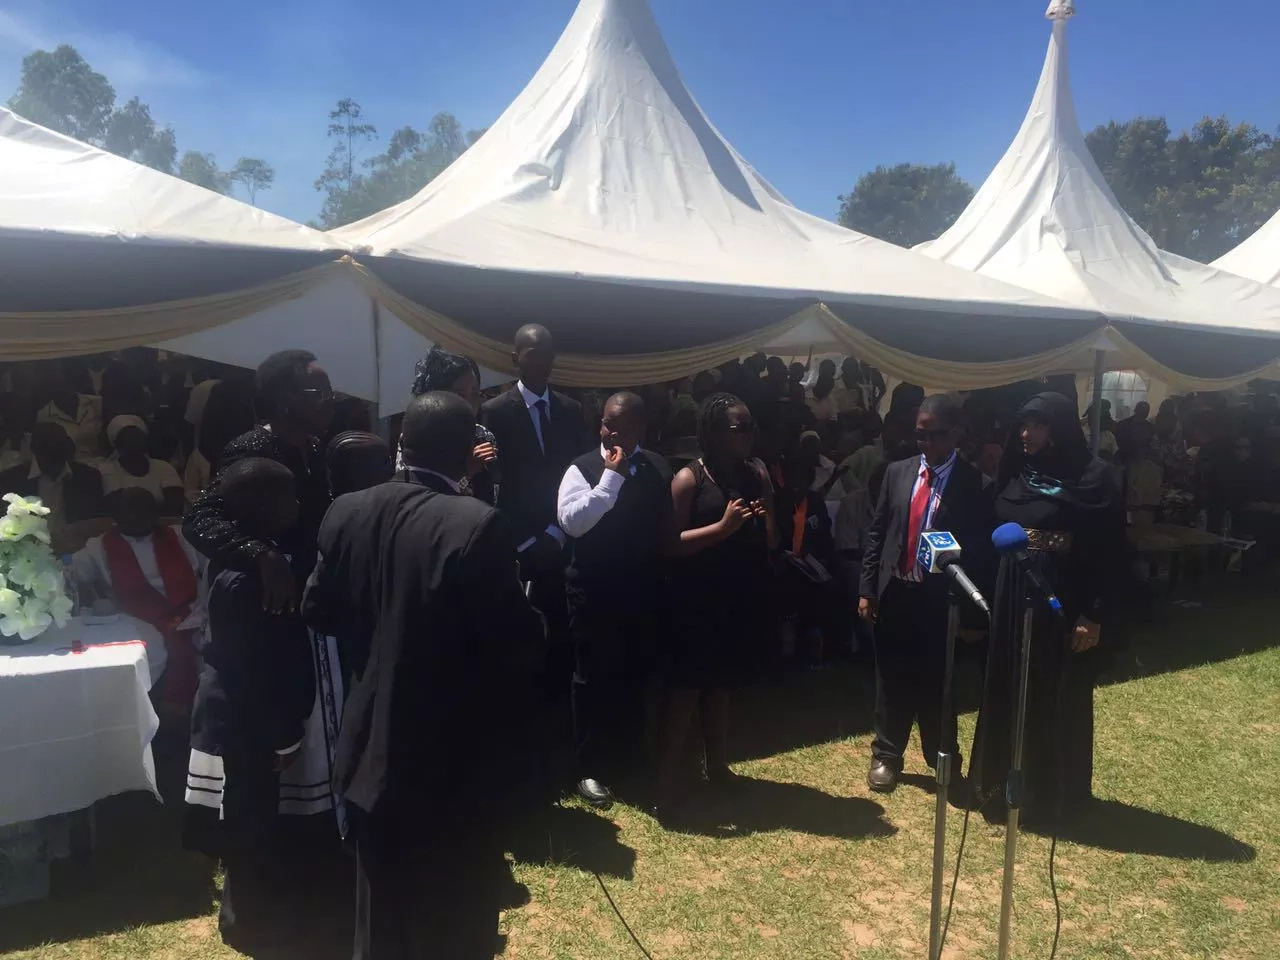 Jacob Juma's secret wives show up at funeral